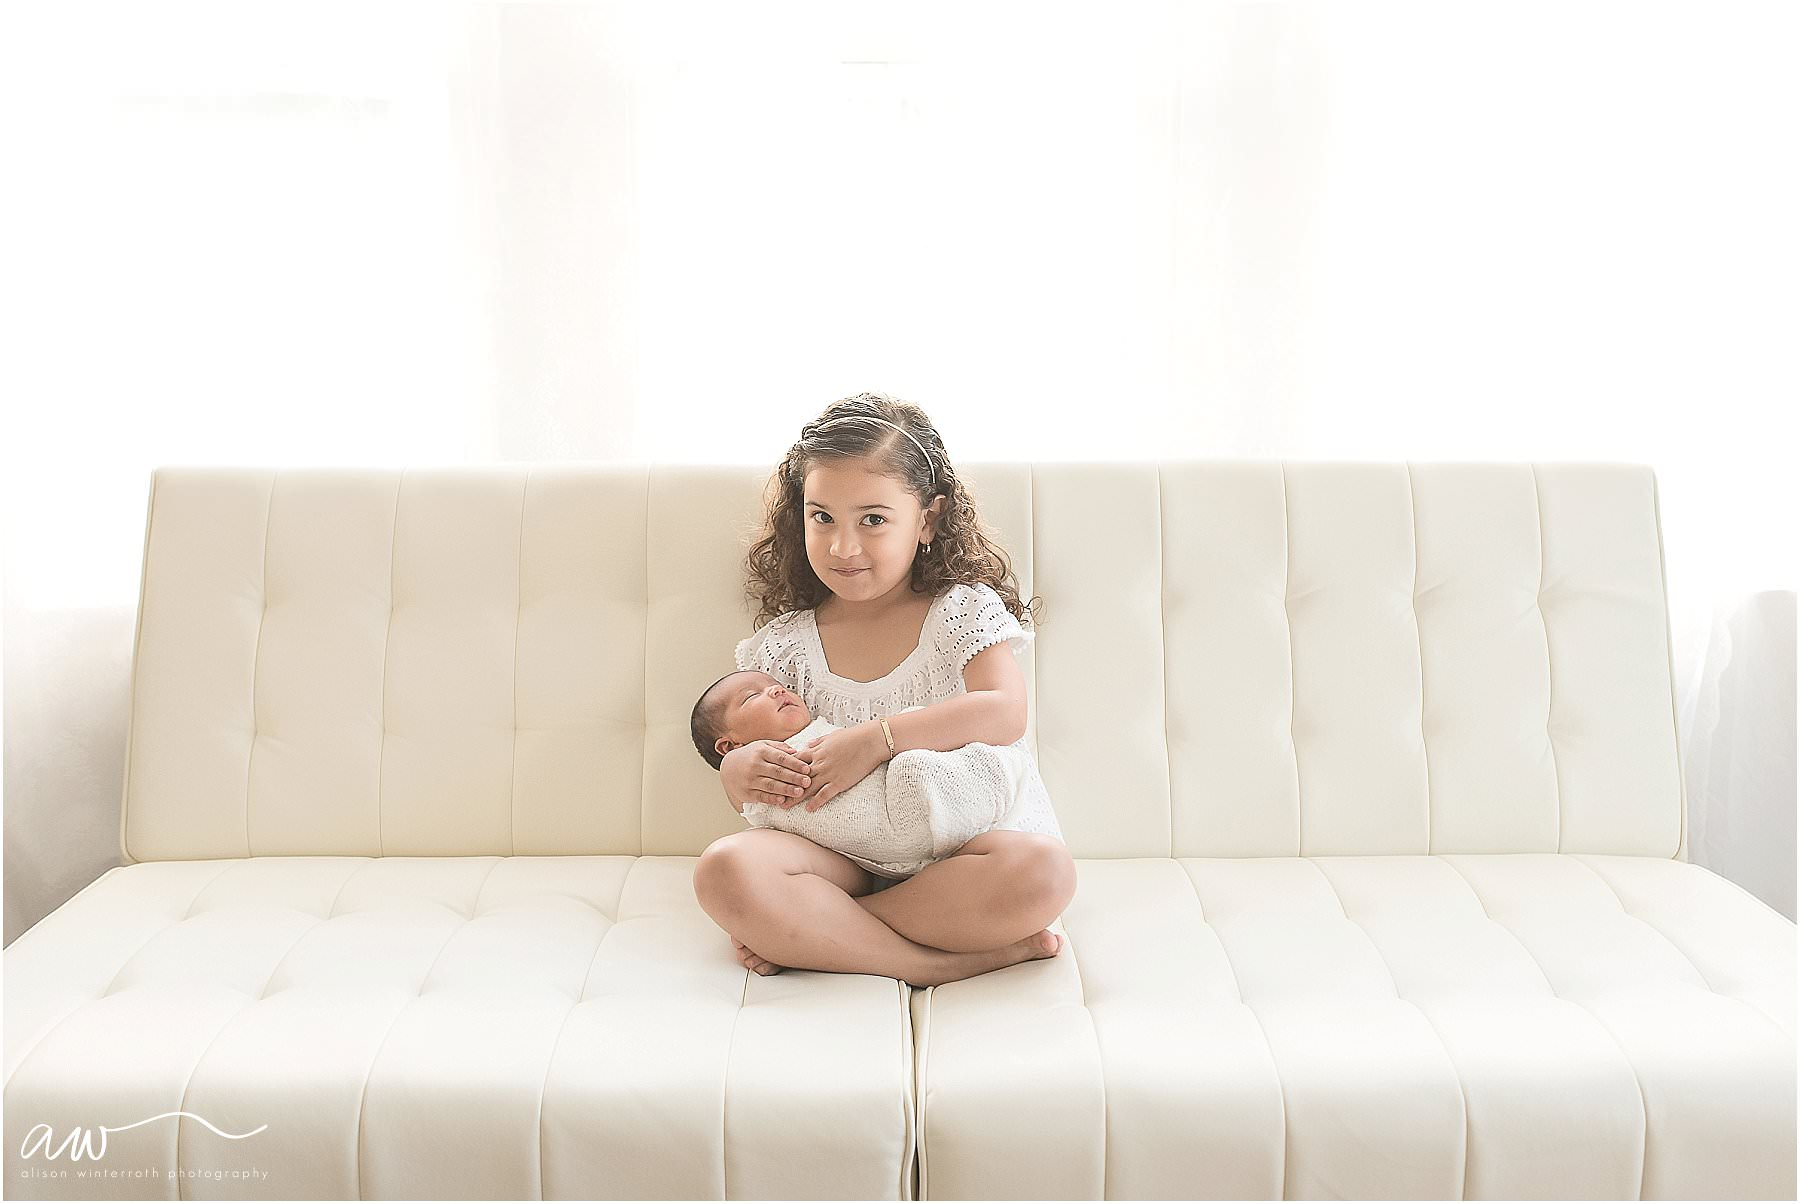 A big sister holds her baby sister on a white couch.